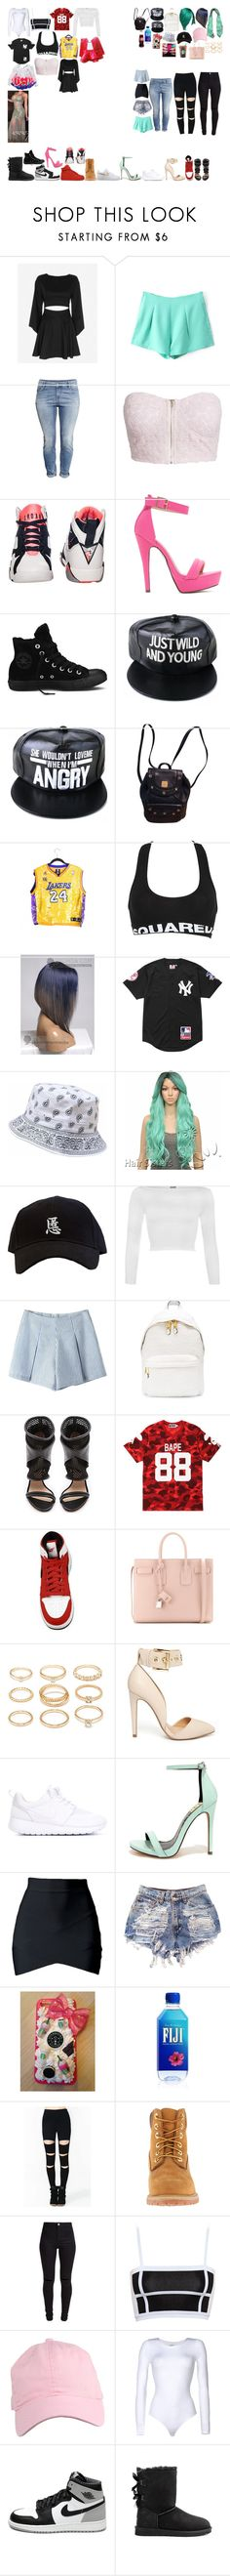 """Road trip with the family"" by royalsinthedark ❤ liked on Polyvore featuring Exclusive for Intermix, H&M, NLY Trend, Retrò, Converse, MCM, Dsquared2, Supreme, WearAll and Moschino"